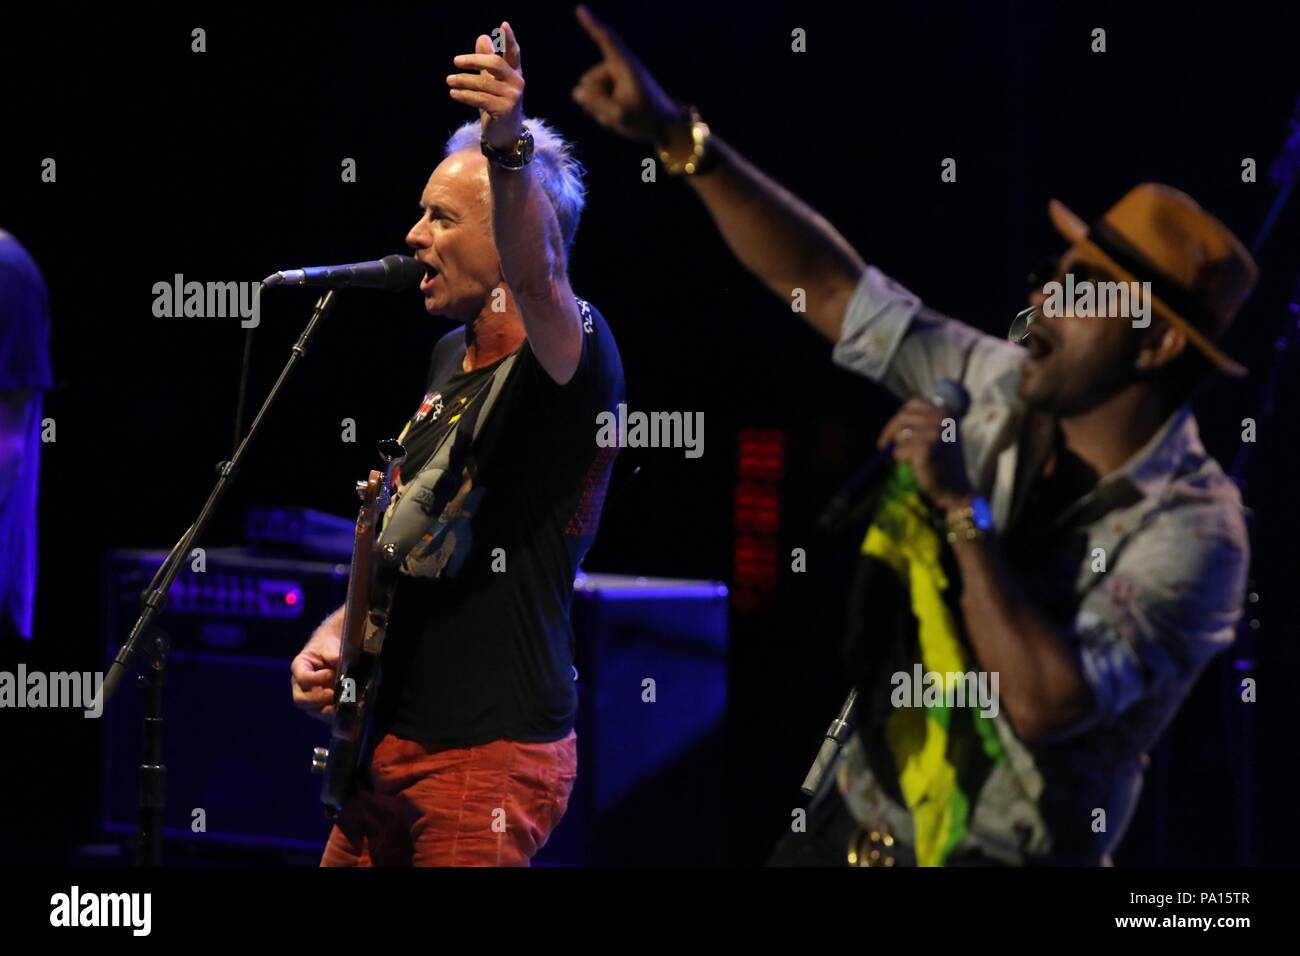 marbella spain 19th july 2018 singers sting and shaggy during festival starlite in marbella on thursday 19 july 2018 credit cordon press alamy live